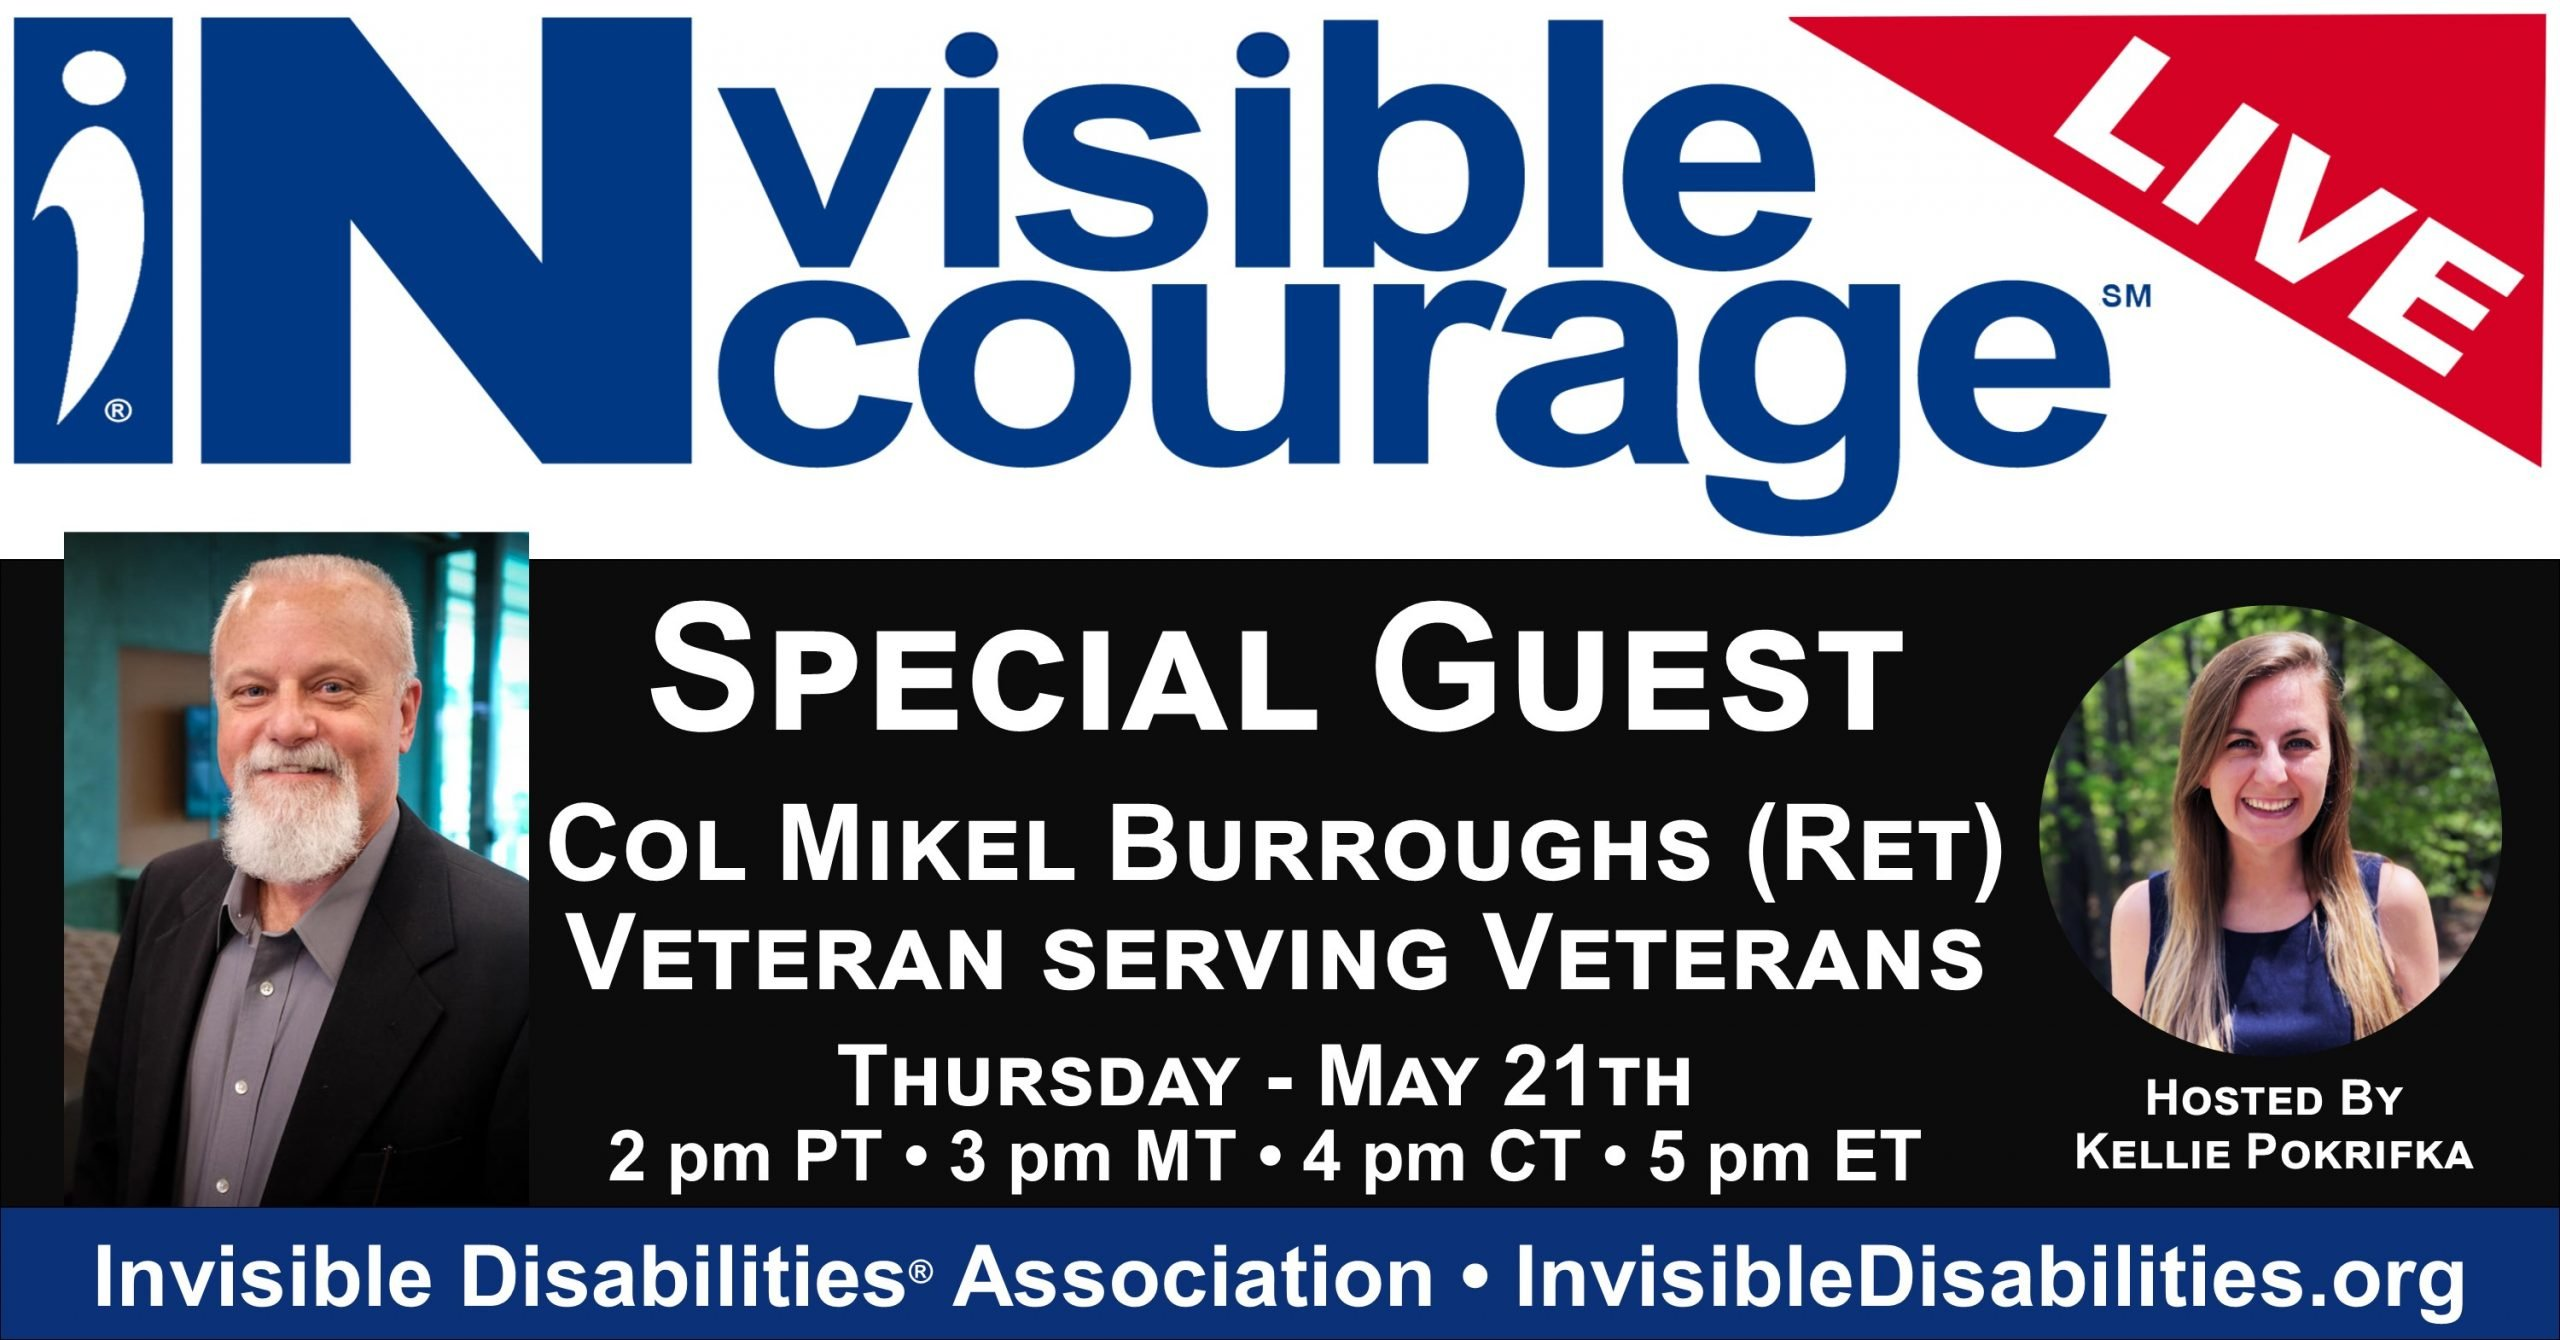 InVisible Encourage Live with Colonel Mikel Burroughs Ret - Invisible Disabilities Association